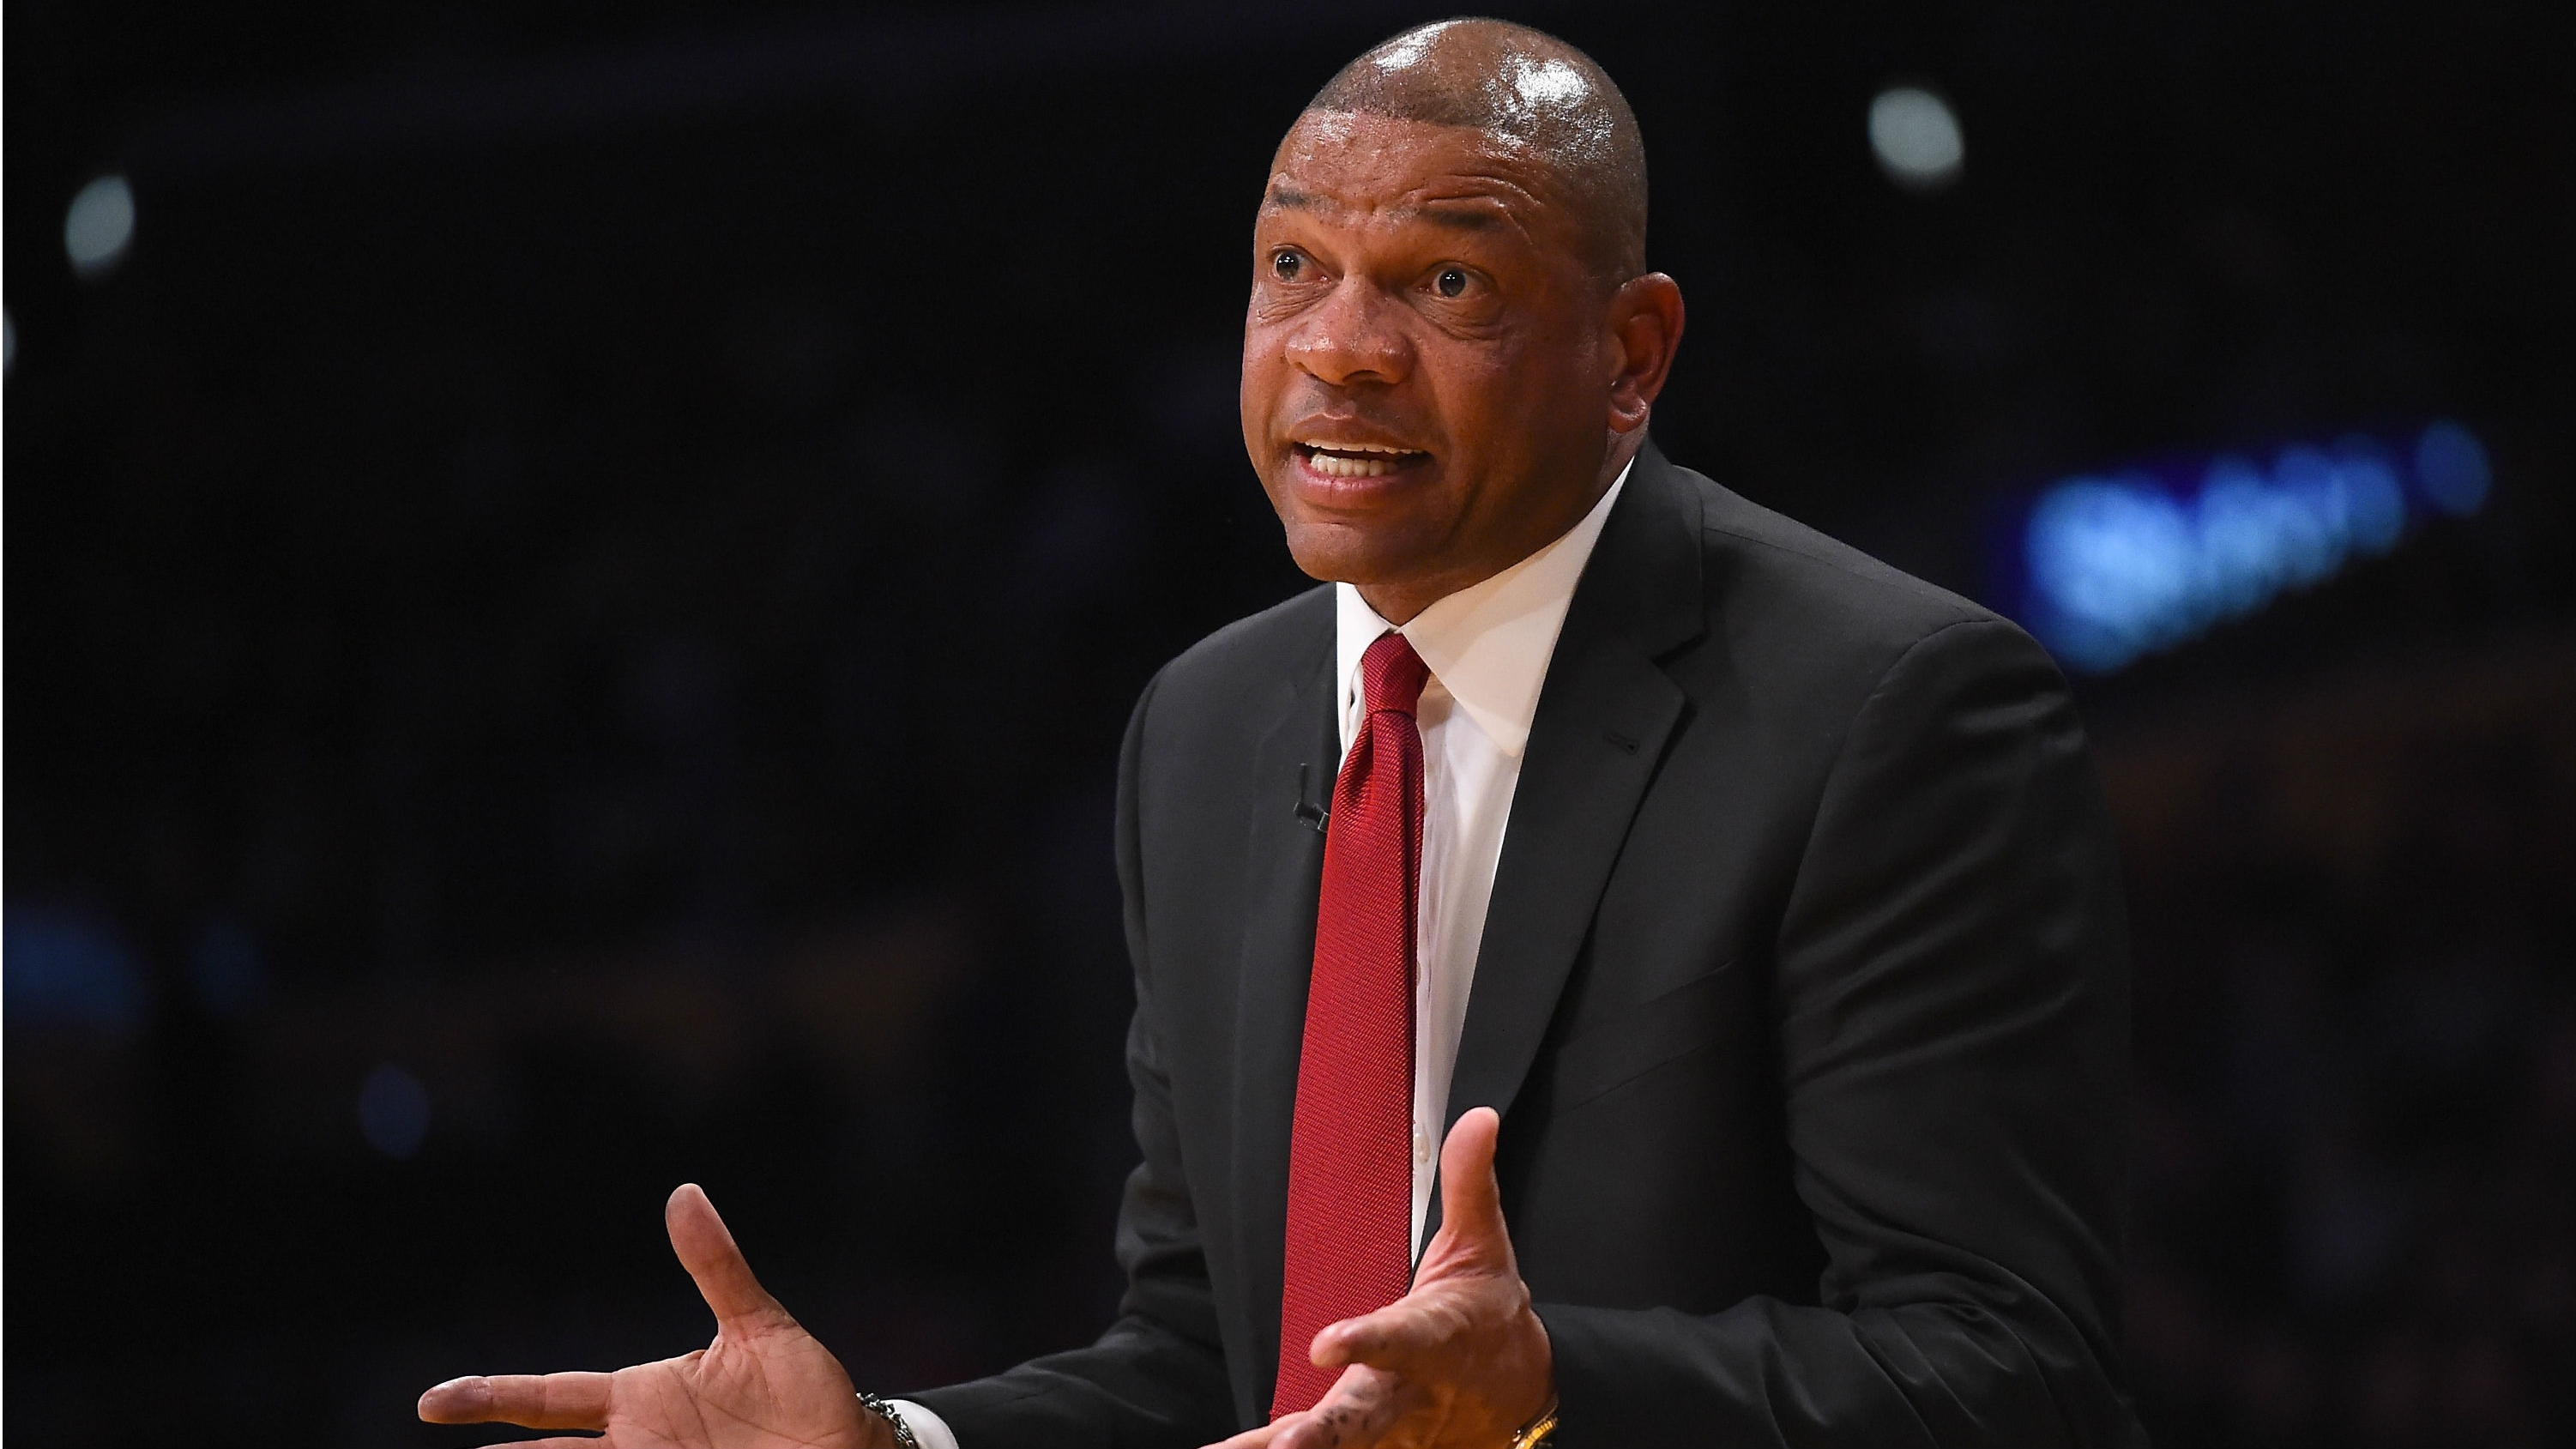 Pacers Nate McMillan Clippers Doc Rivers named Coaches of the